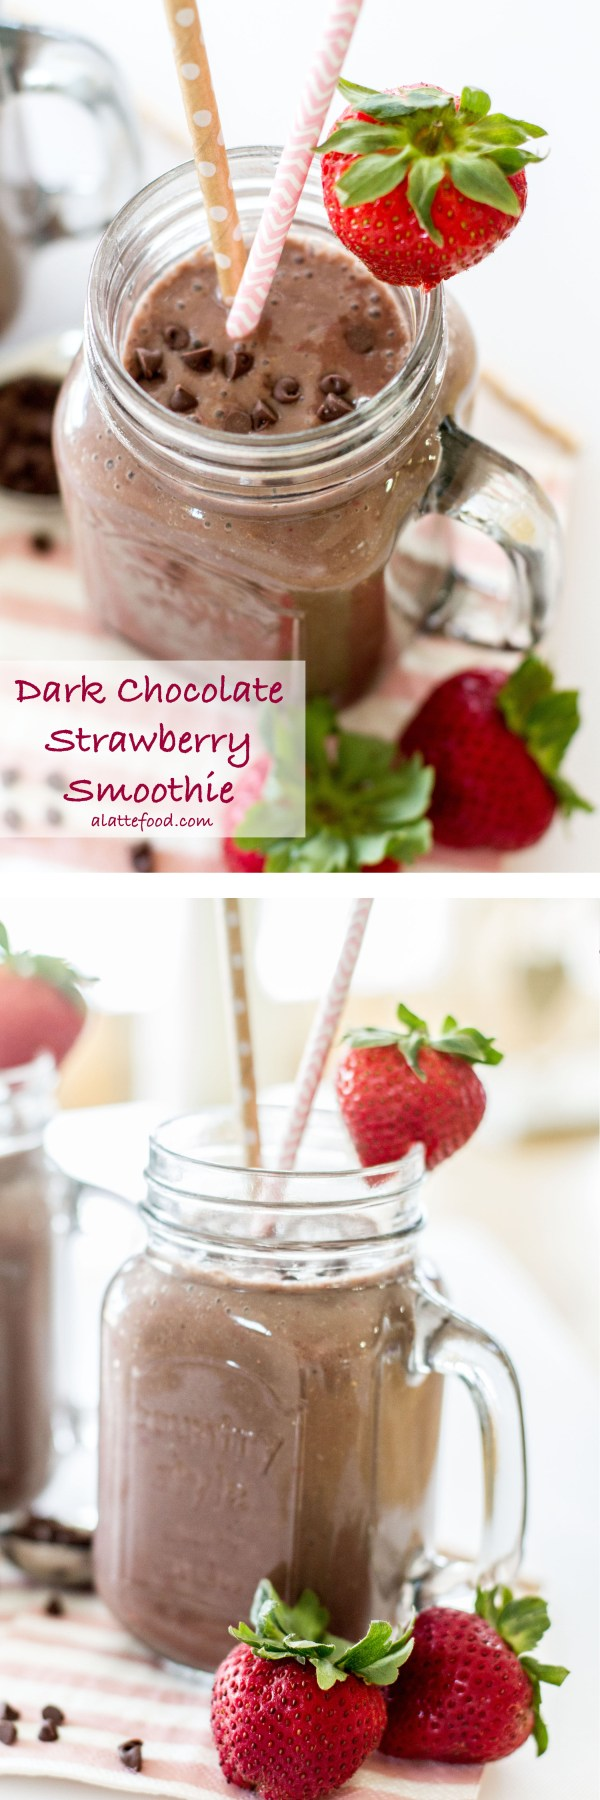 This fruity smoothie tastes like a chocolate dipped strawberry! | www.alattefood.com